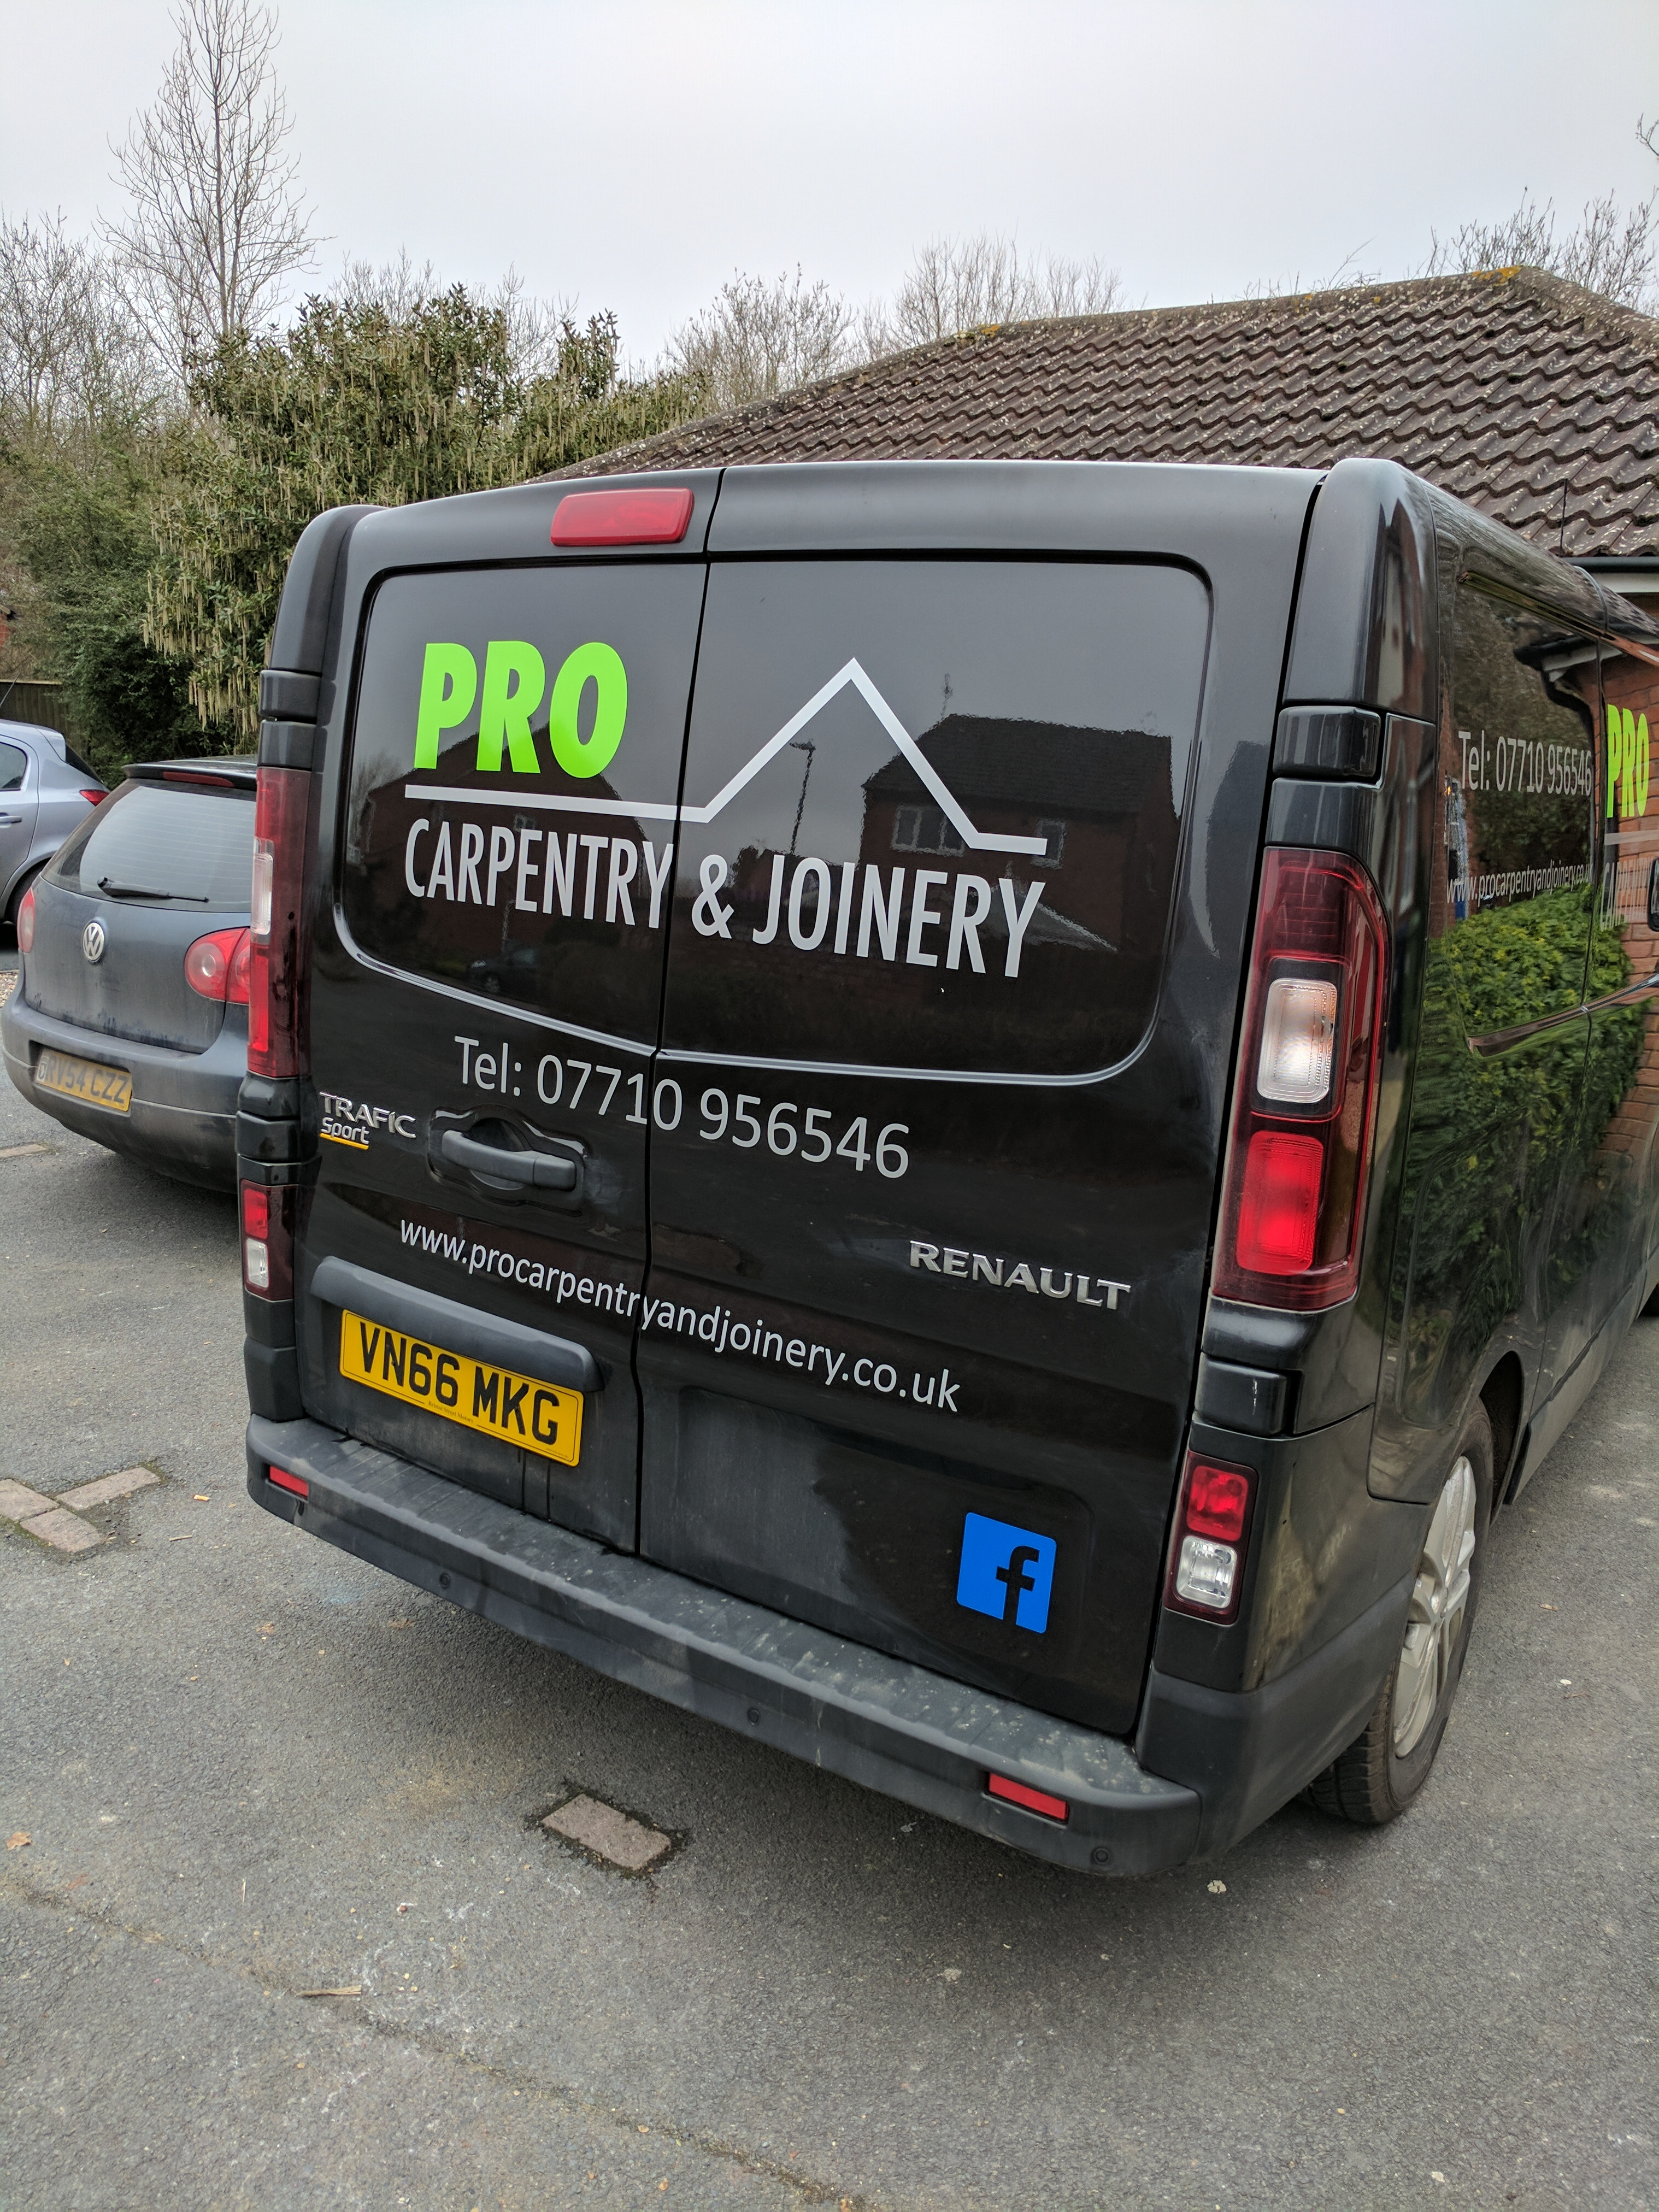 The Van Has Its Signwriting Pro Carpentry Amp Joinery